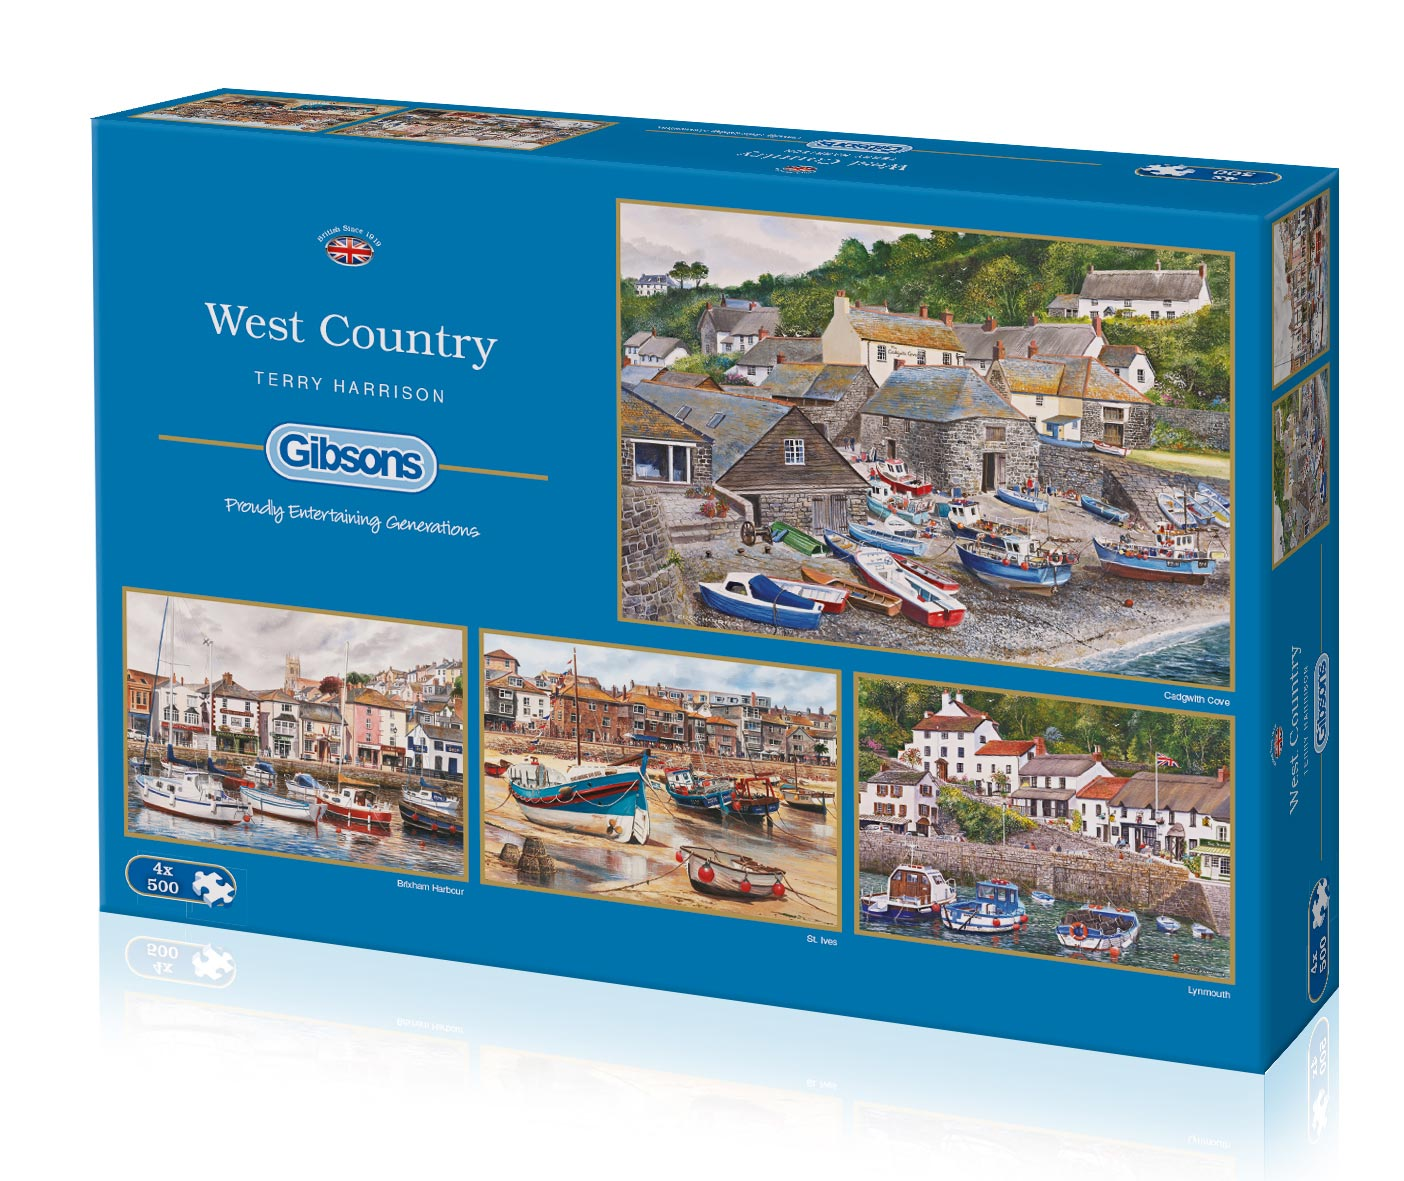 West Country 4 x 500 pce. box set